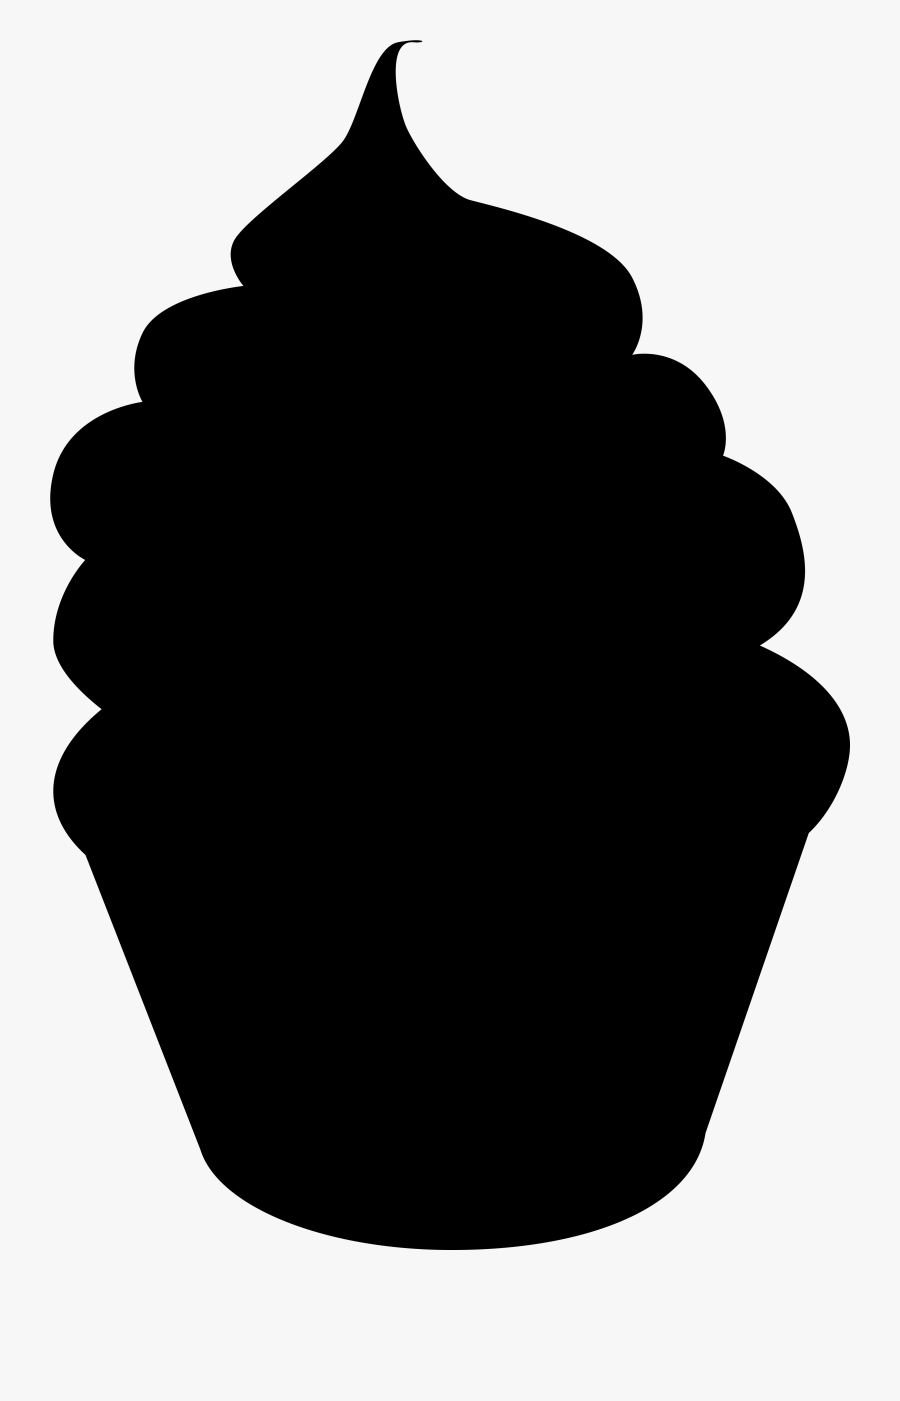 cupcake silhouette cupcake silhouette clipart free download on clipartmag silhouette cupcake